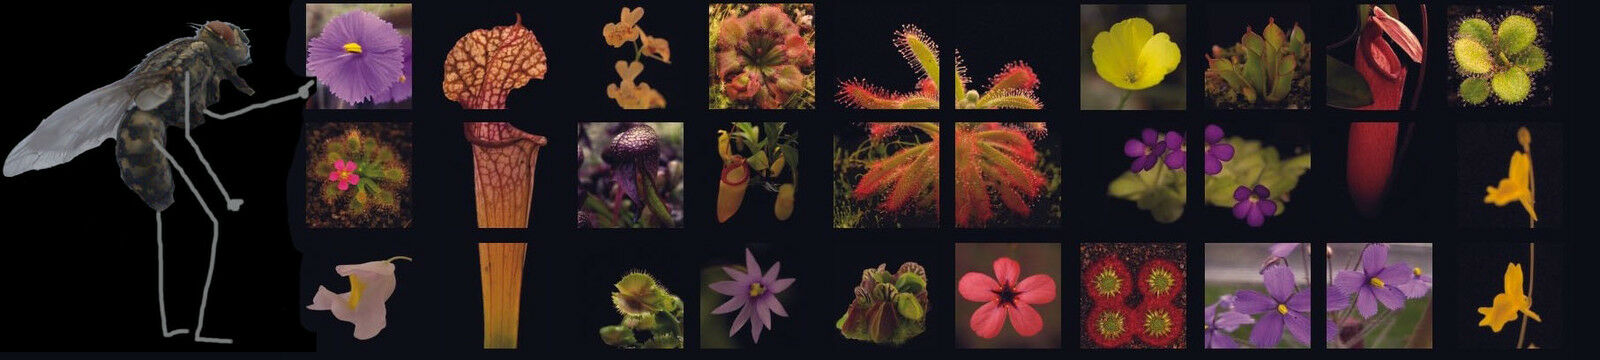 Carnivorous plants and seeds